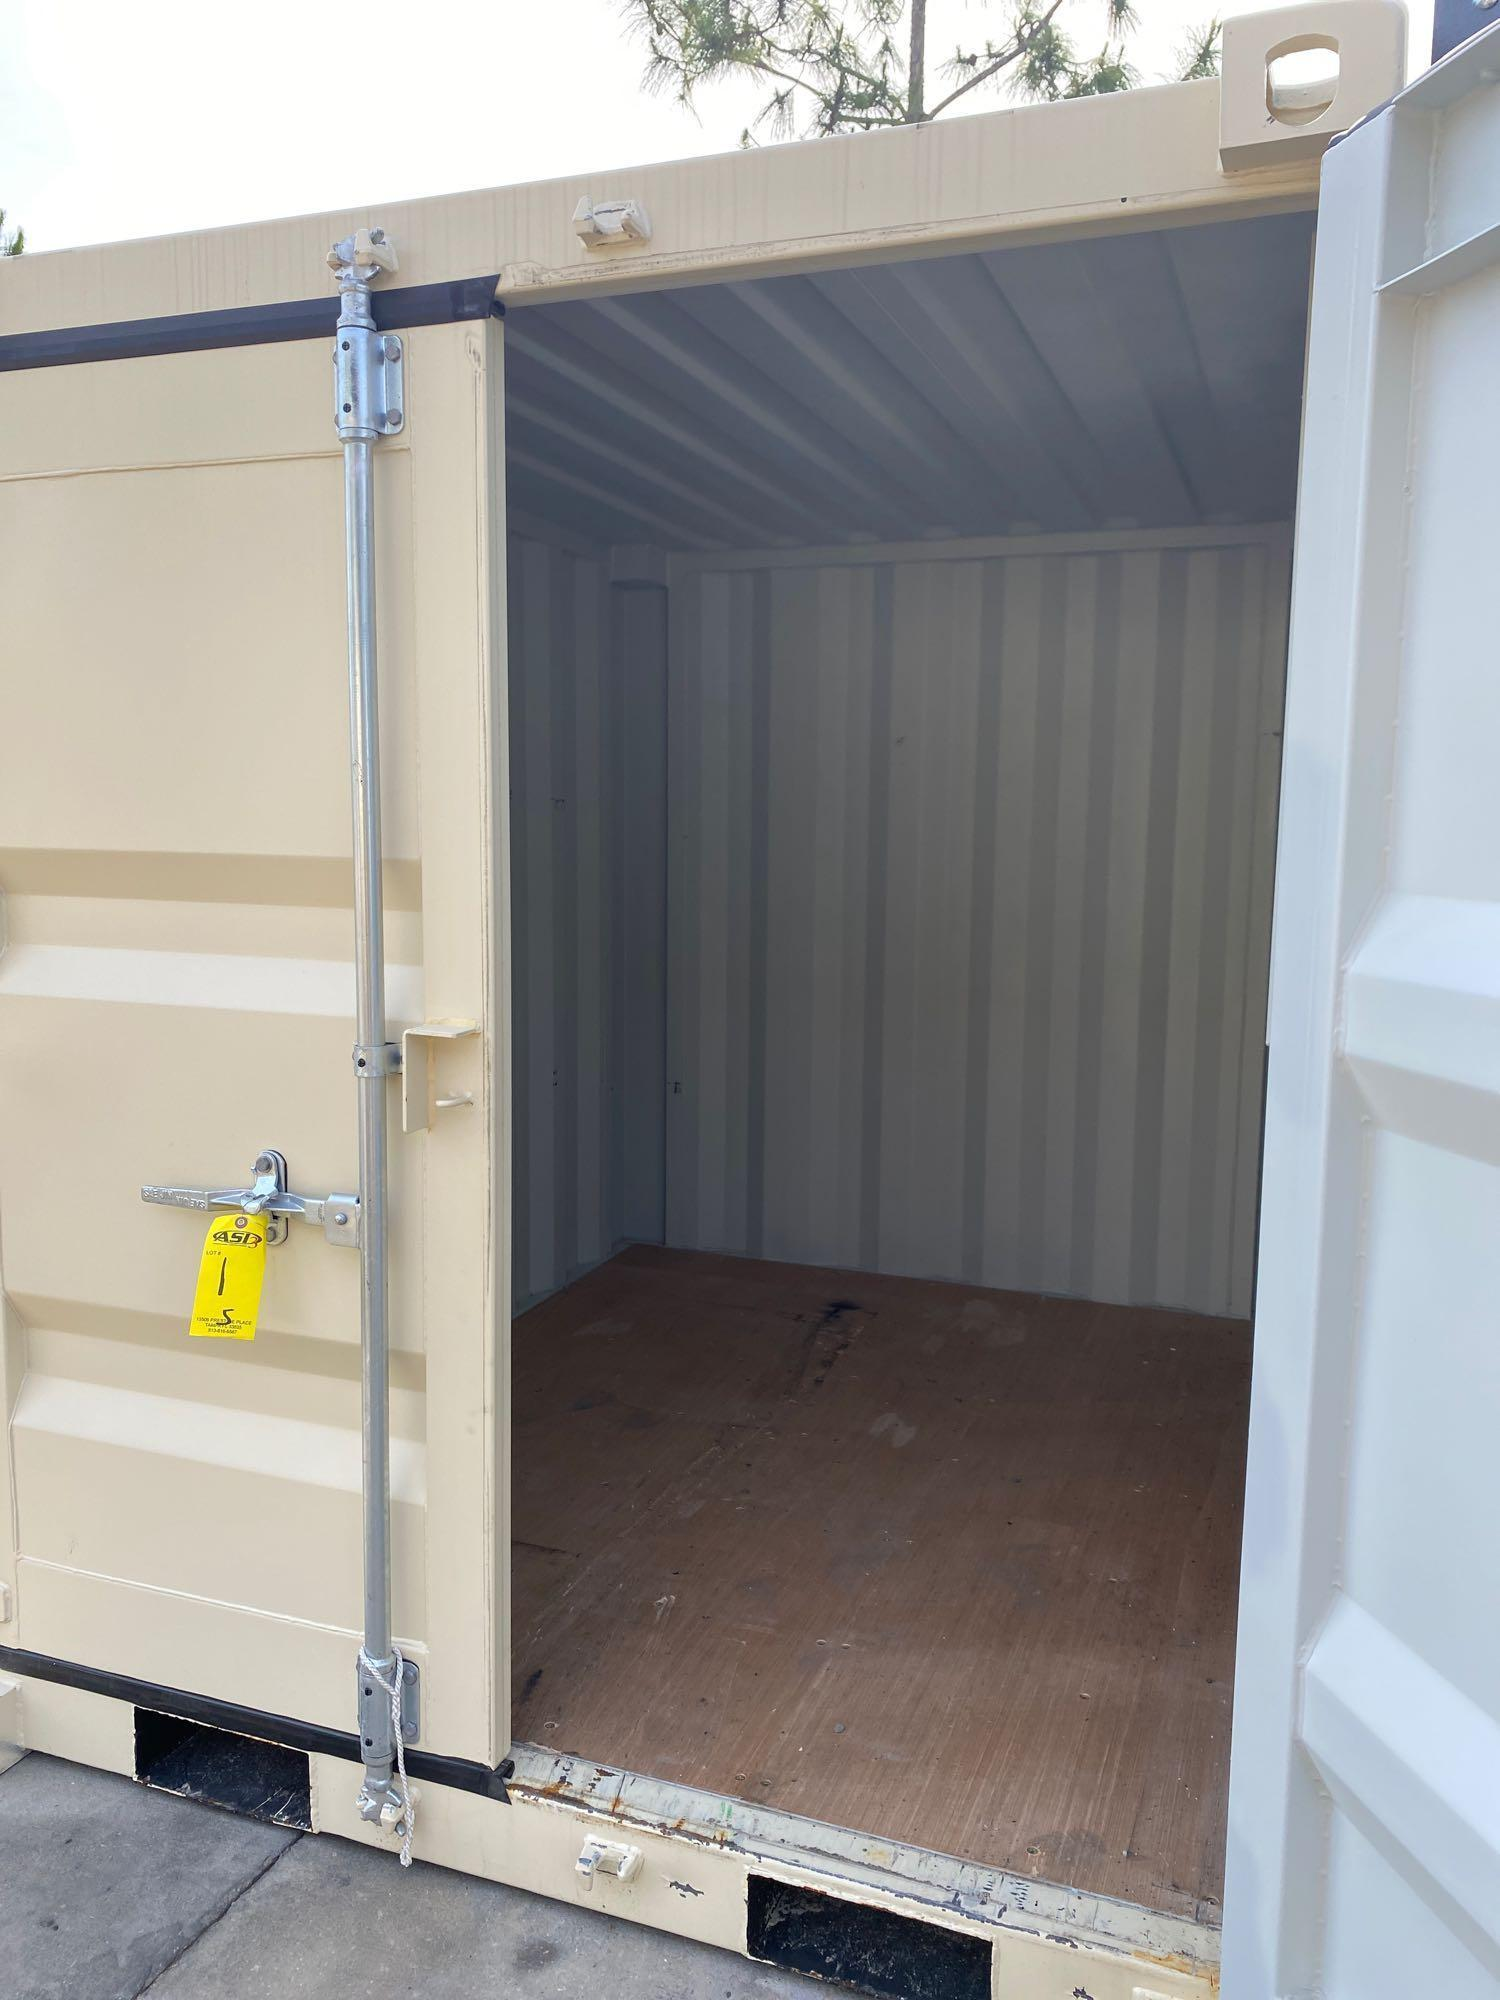 """UNUSED PORTABLE OFFICE/STORAGE CONTAINER WITH WINDOW AND SIDE DOOR, APPROX 77""""w 84""""t 98"""" deep - Image 4 of 6"""